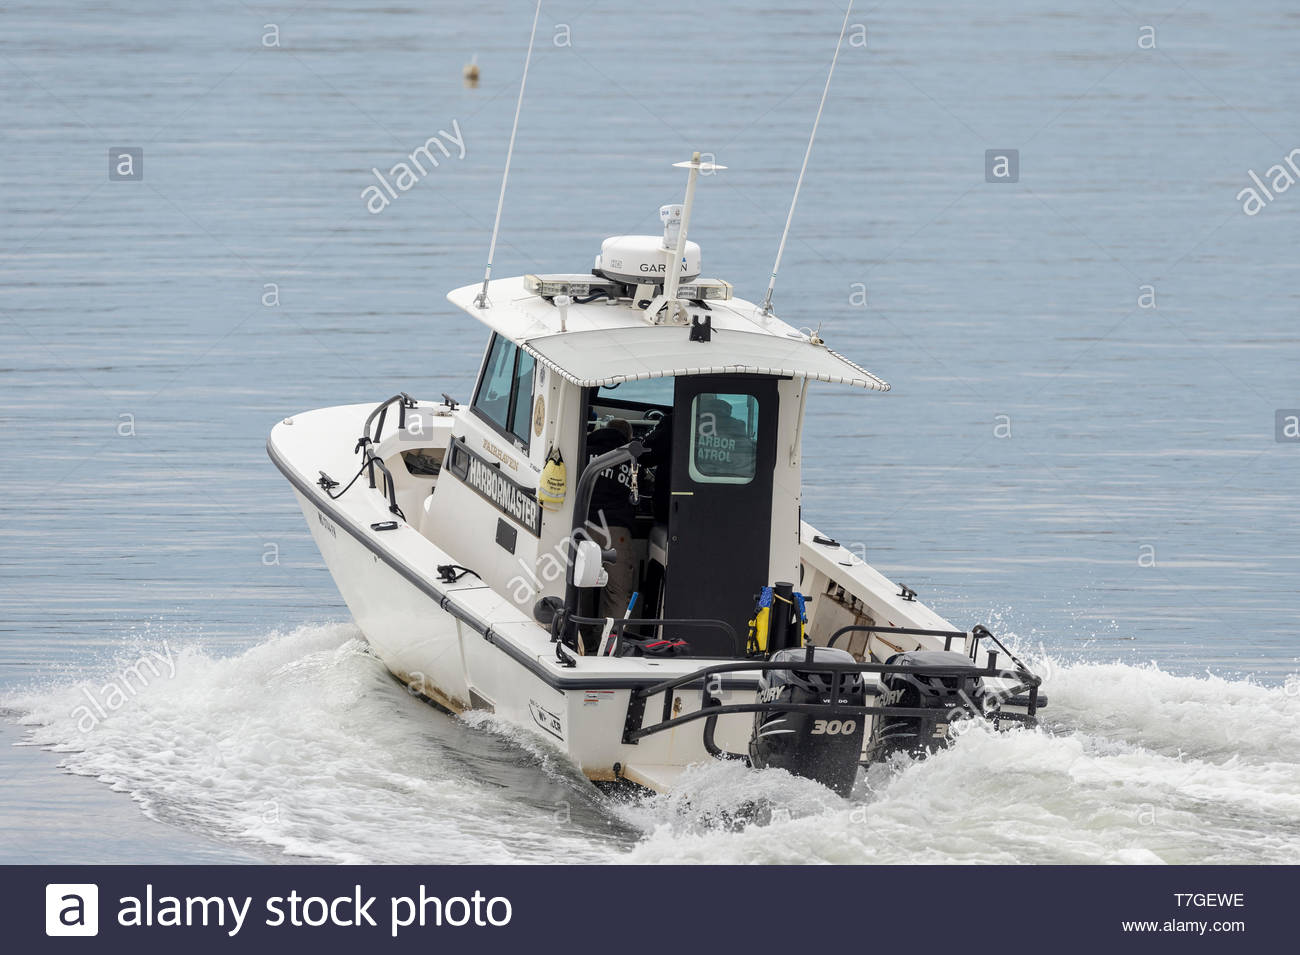 Fairhaven, Massachusetts, USA - May 1, 2019: Patrol boat surges ahead as Fairhaven Harbormaster transits New Bedford hurricane protection barrier - Stock Image